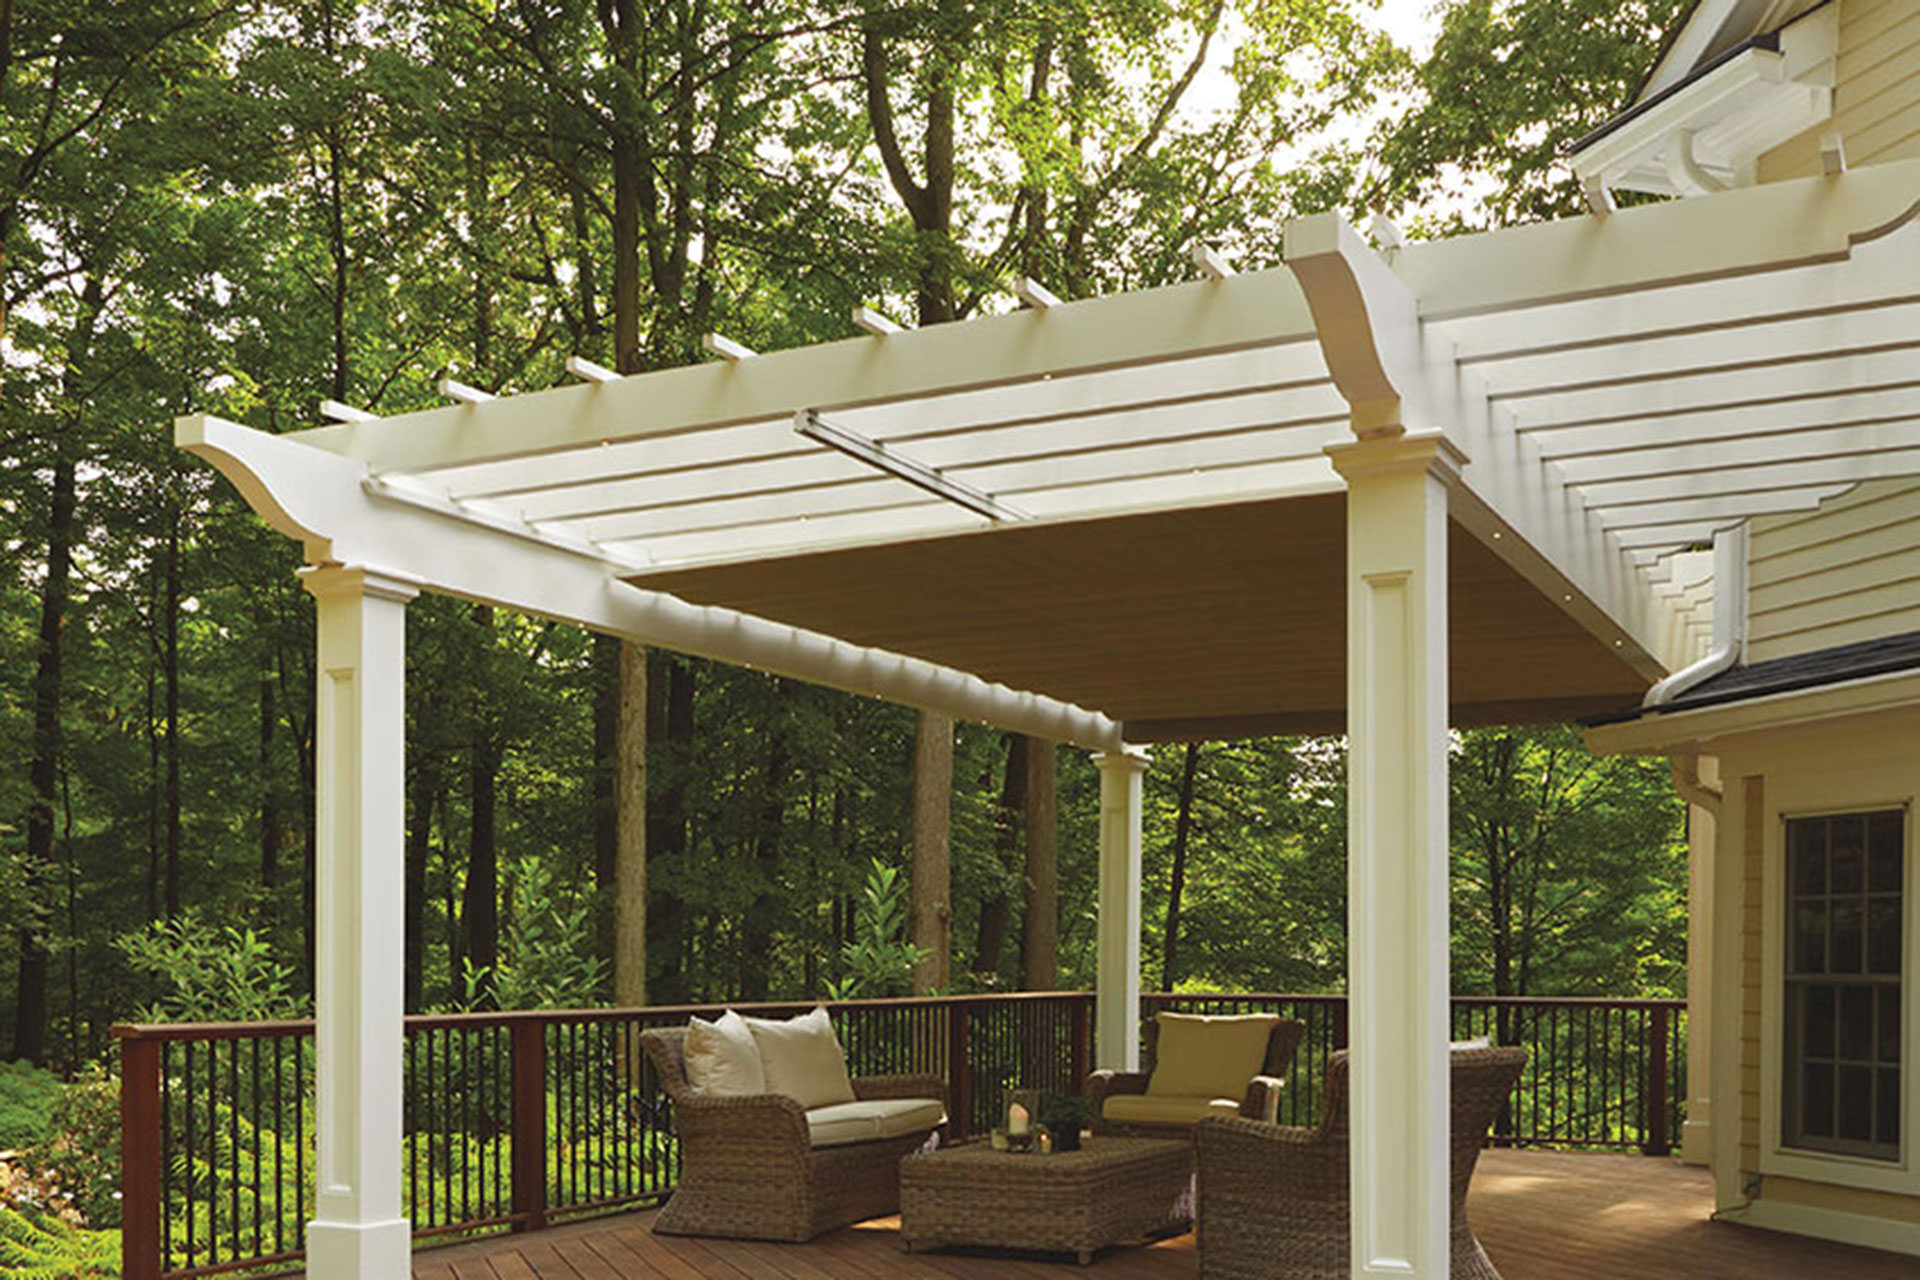 Retractable canopy for pergola - Retractable Canopy For Pergola 2